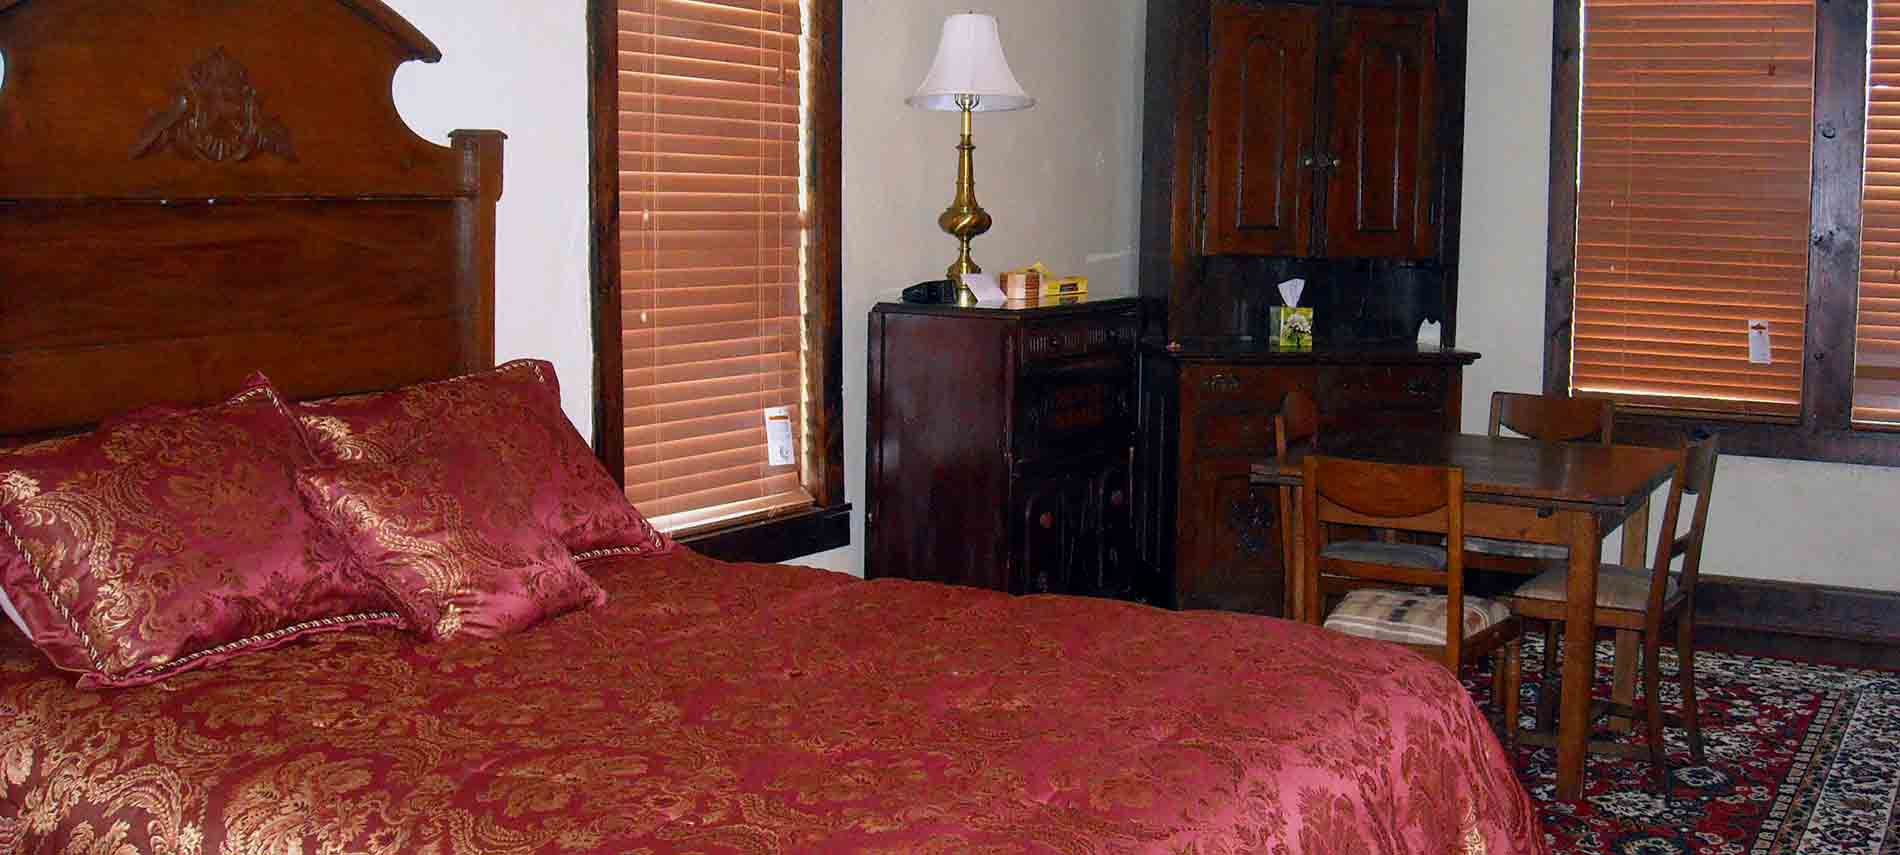 : Single Room Suite with the bed's wooden headboard and red-and-gold embroidered coverlet in the foreground and Depression-era drop-leaf dining table, and Hoosier cabinet in the background